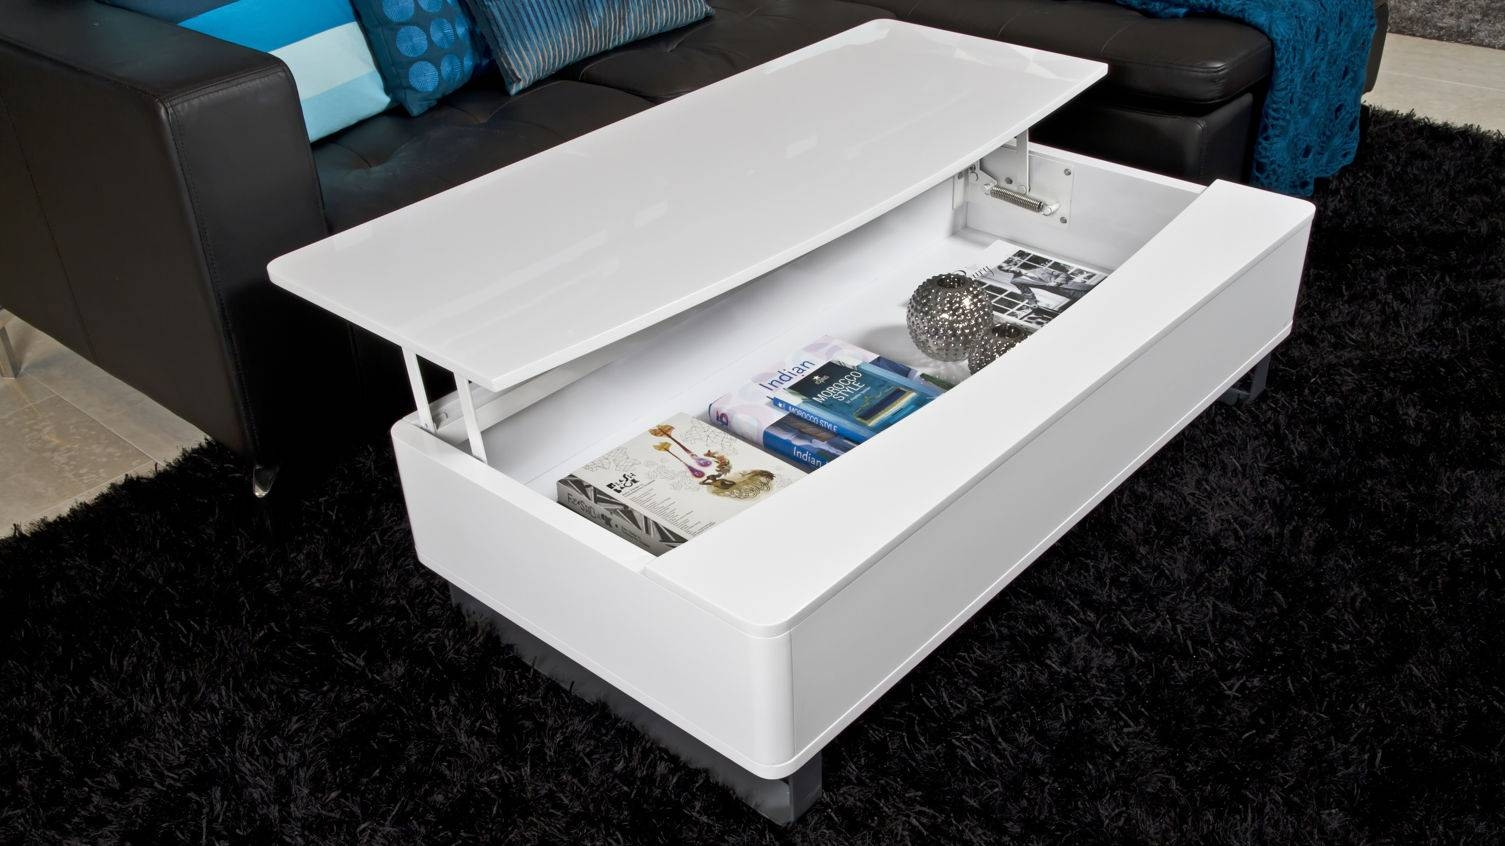 Beautiful Great White Coffee Table Design – White Coffee Tables inside Round High Gloss Coffee Tables (Image 2 of 30)